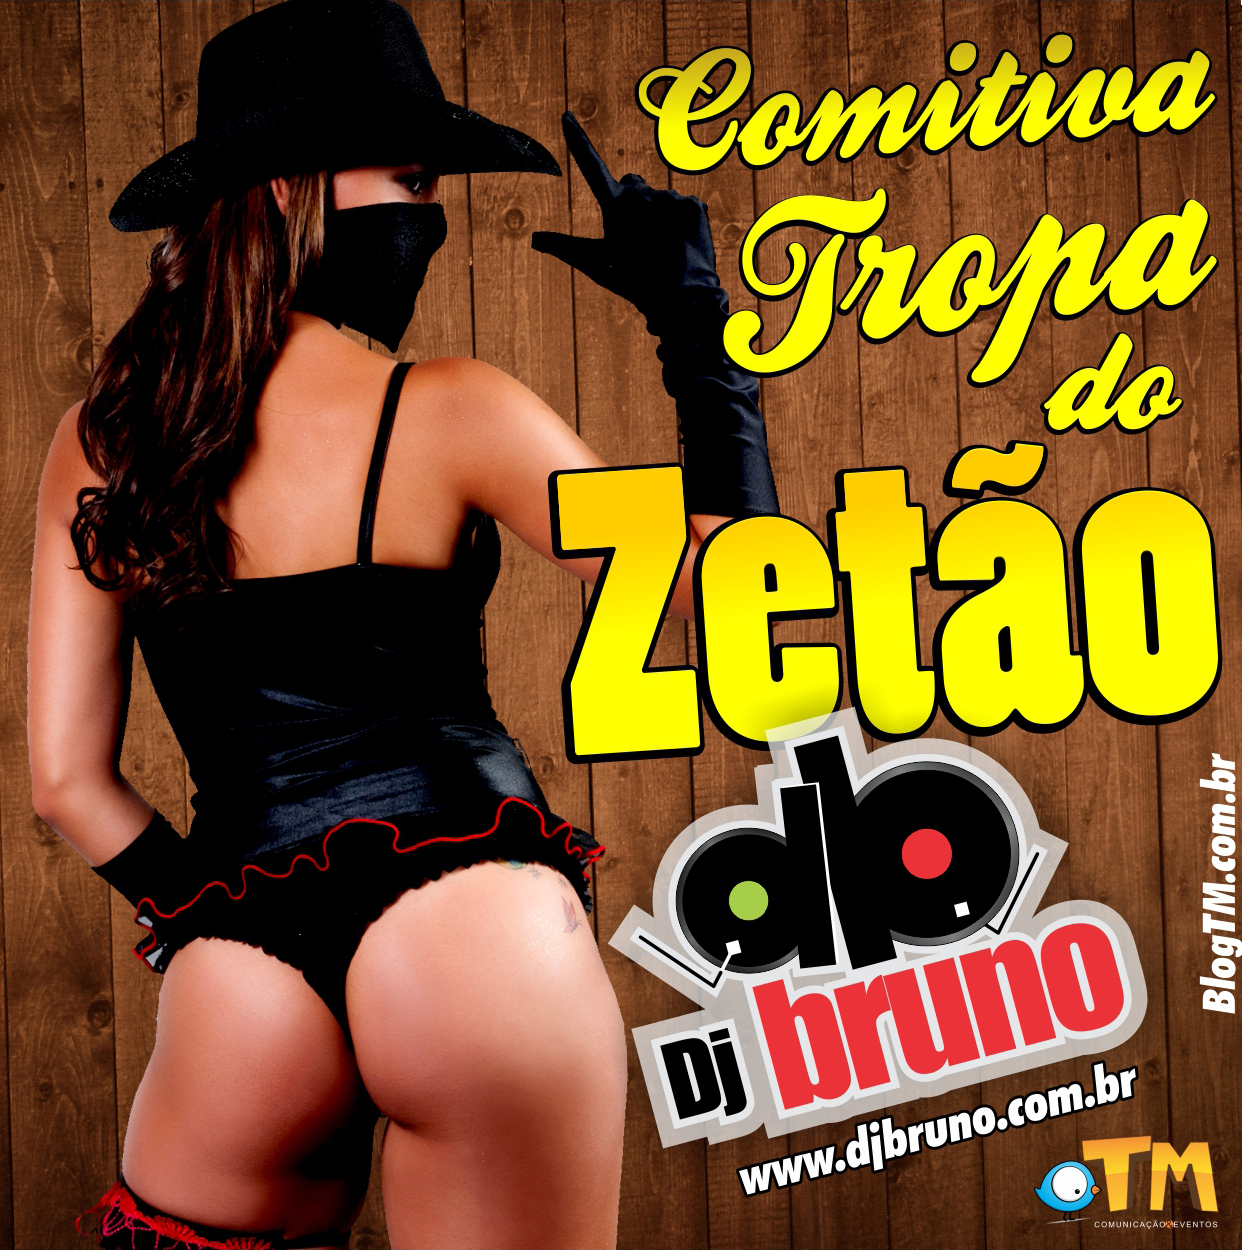 Dj Bruno Granado - Comitiva Tropa do Zet�o Vol.02